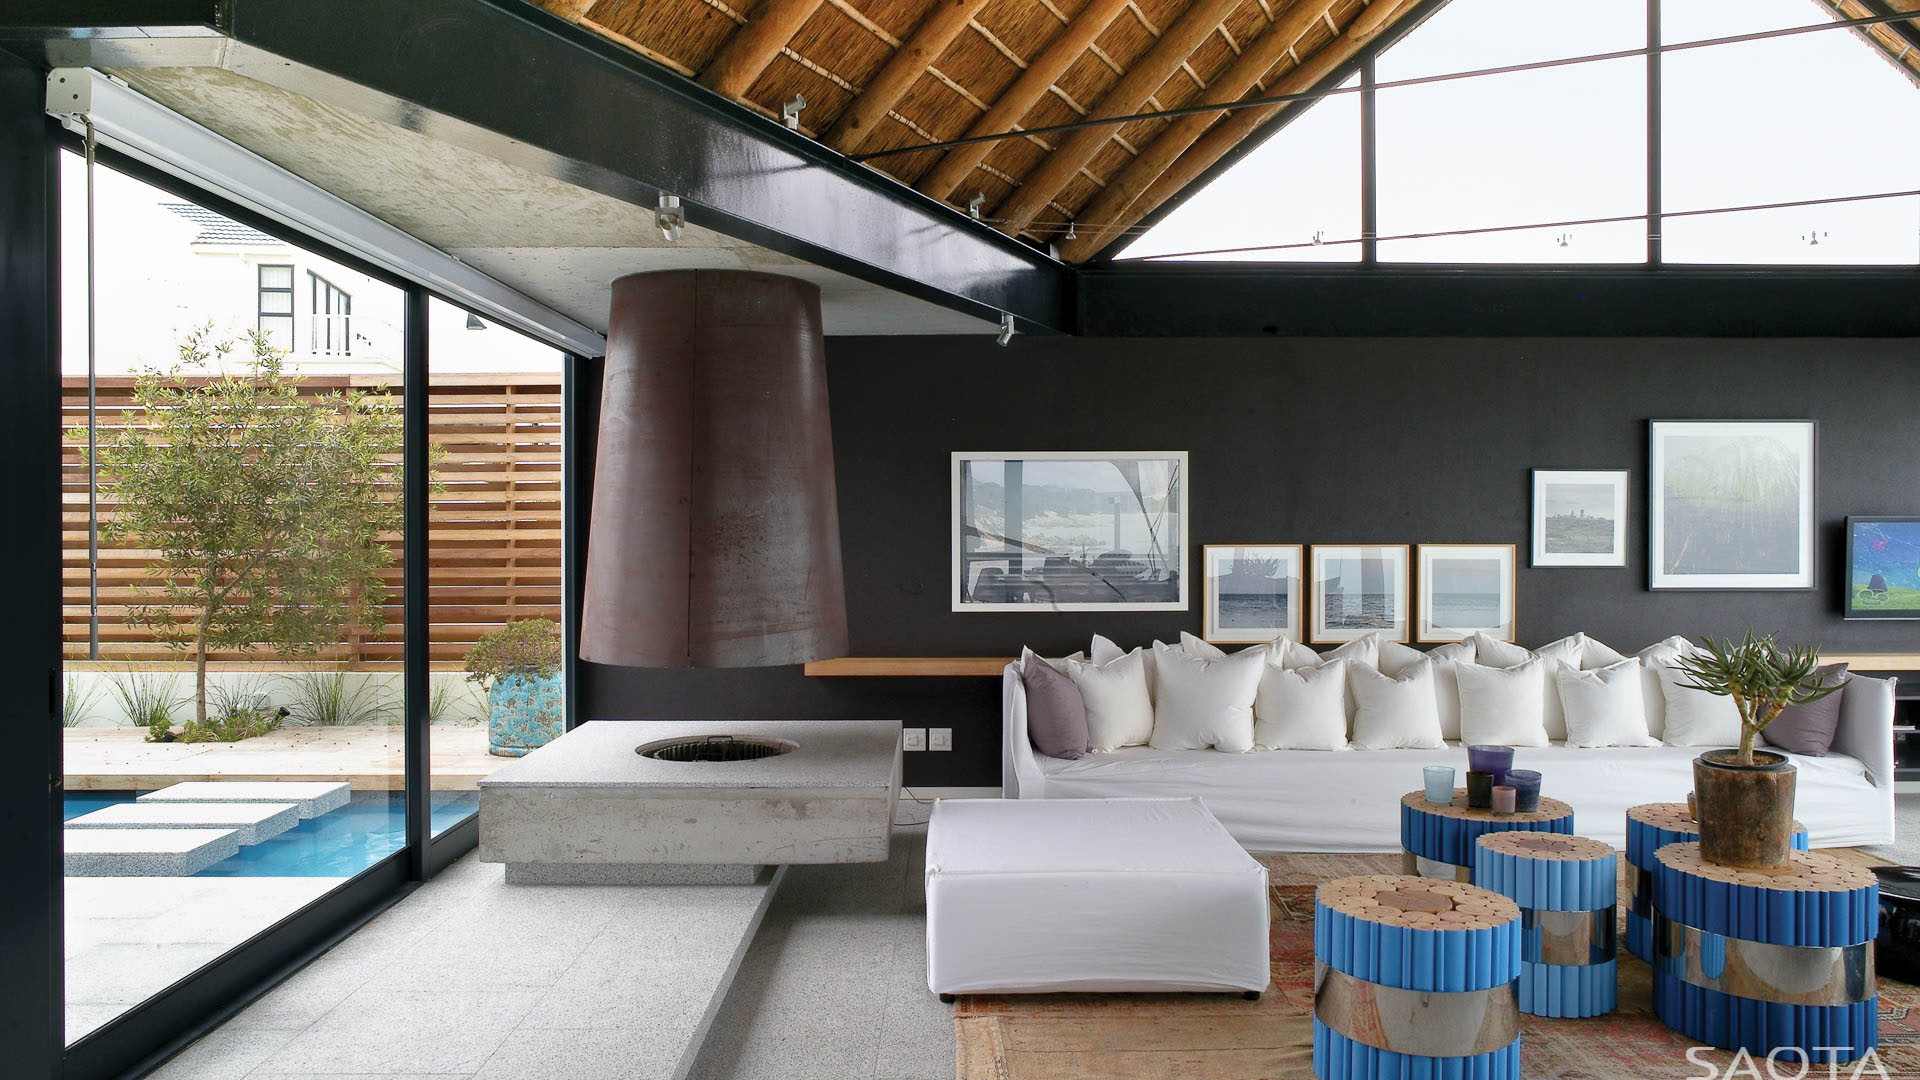 Ocean view contemporary luxury home with thatched roof for House decor ideas south africa